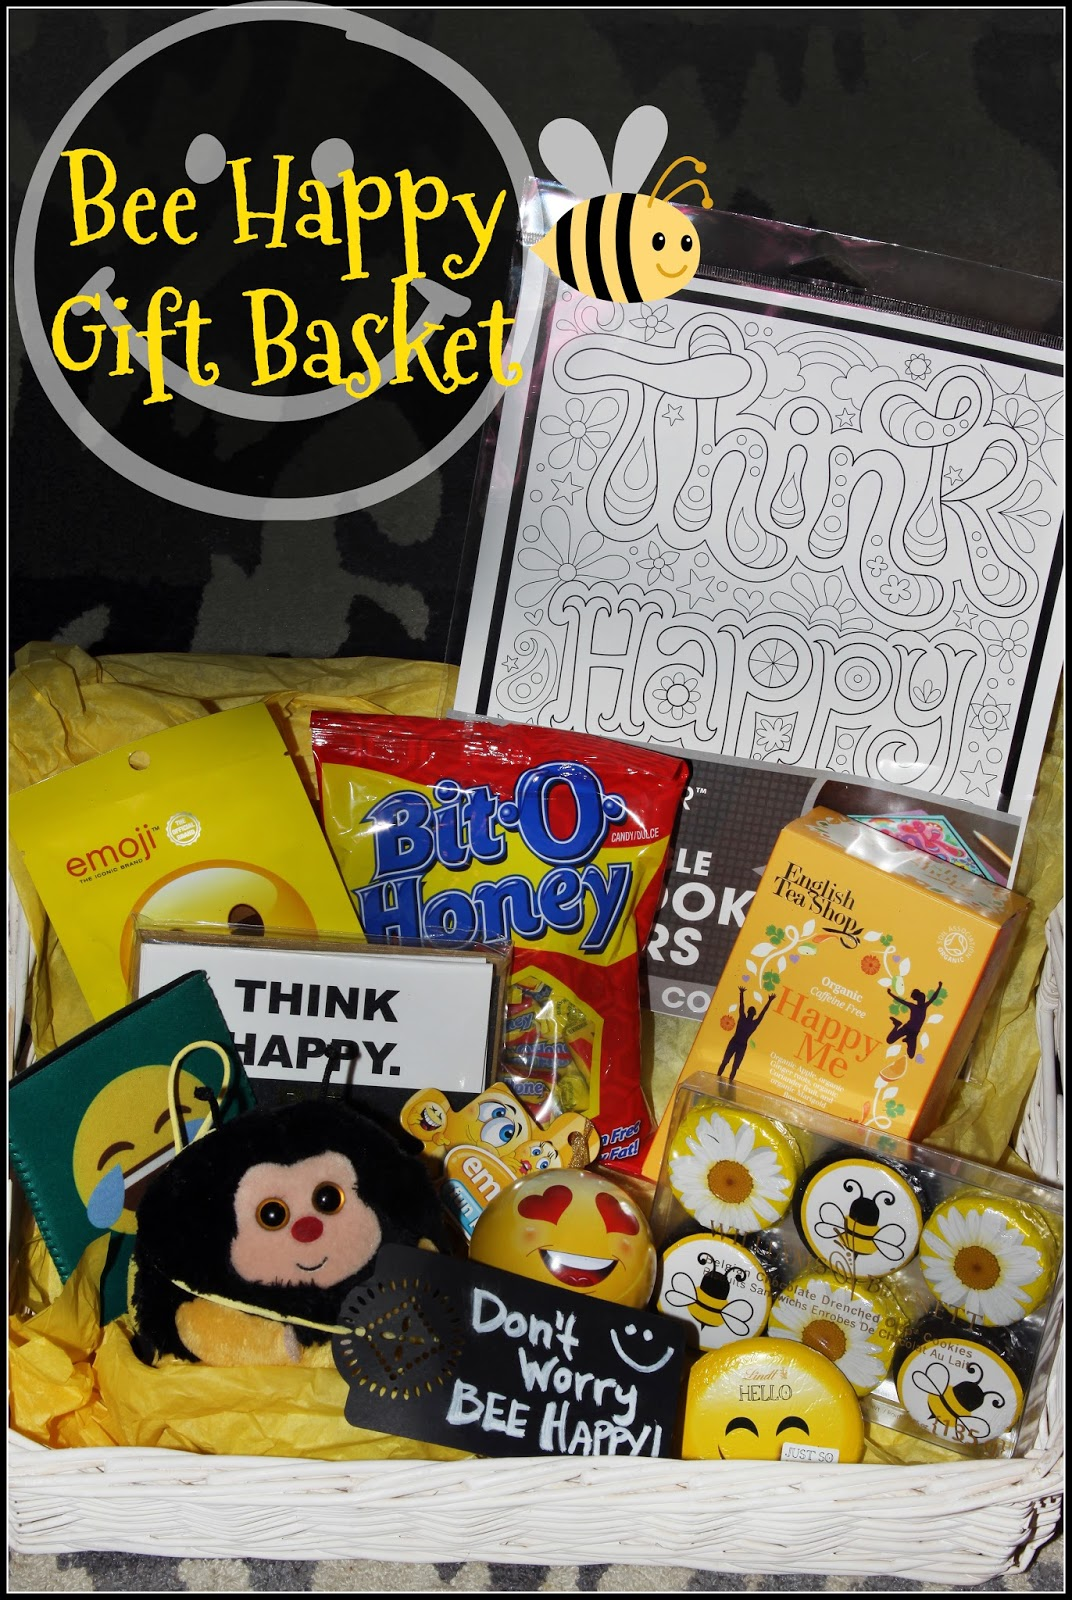 For the Love of Food: Don't Worry Bee Happy Gift Basket